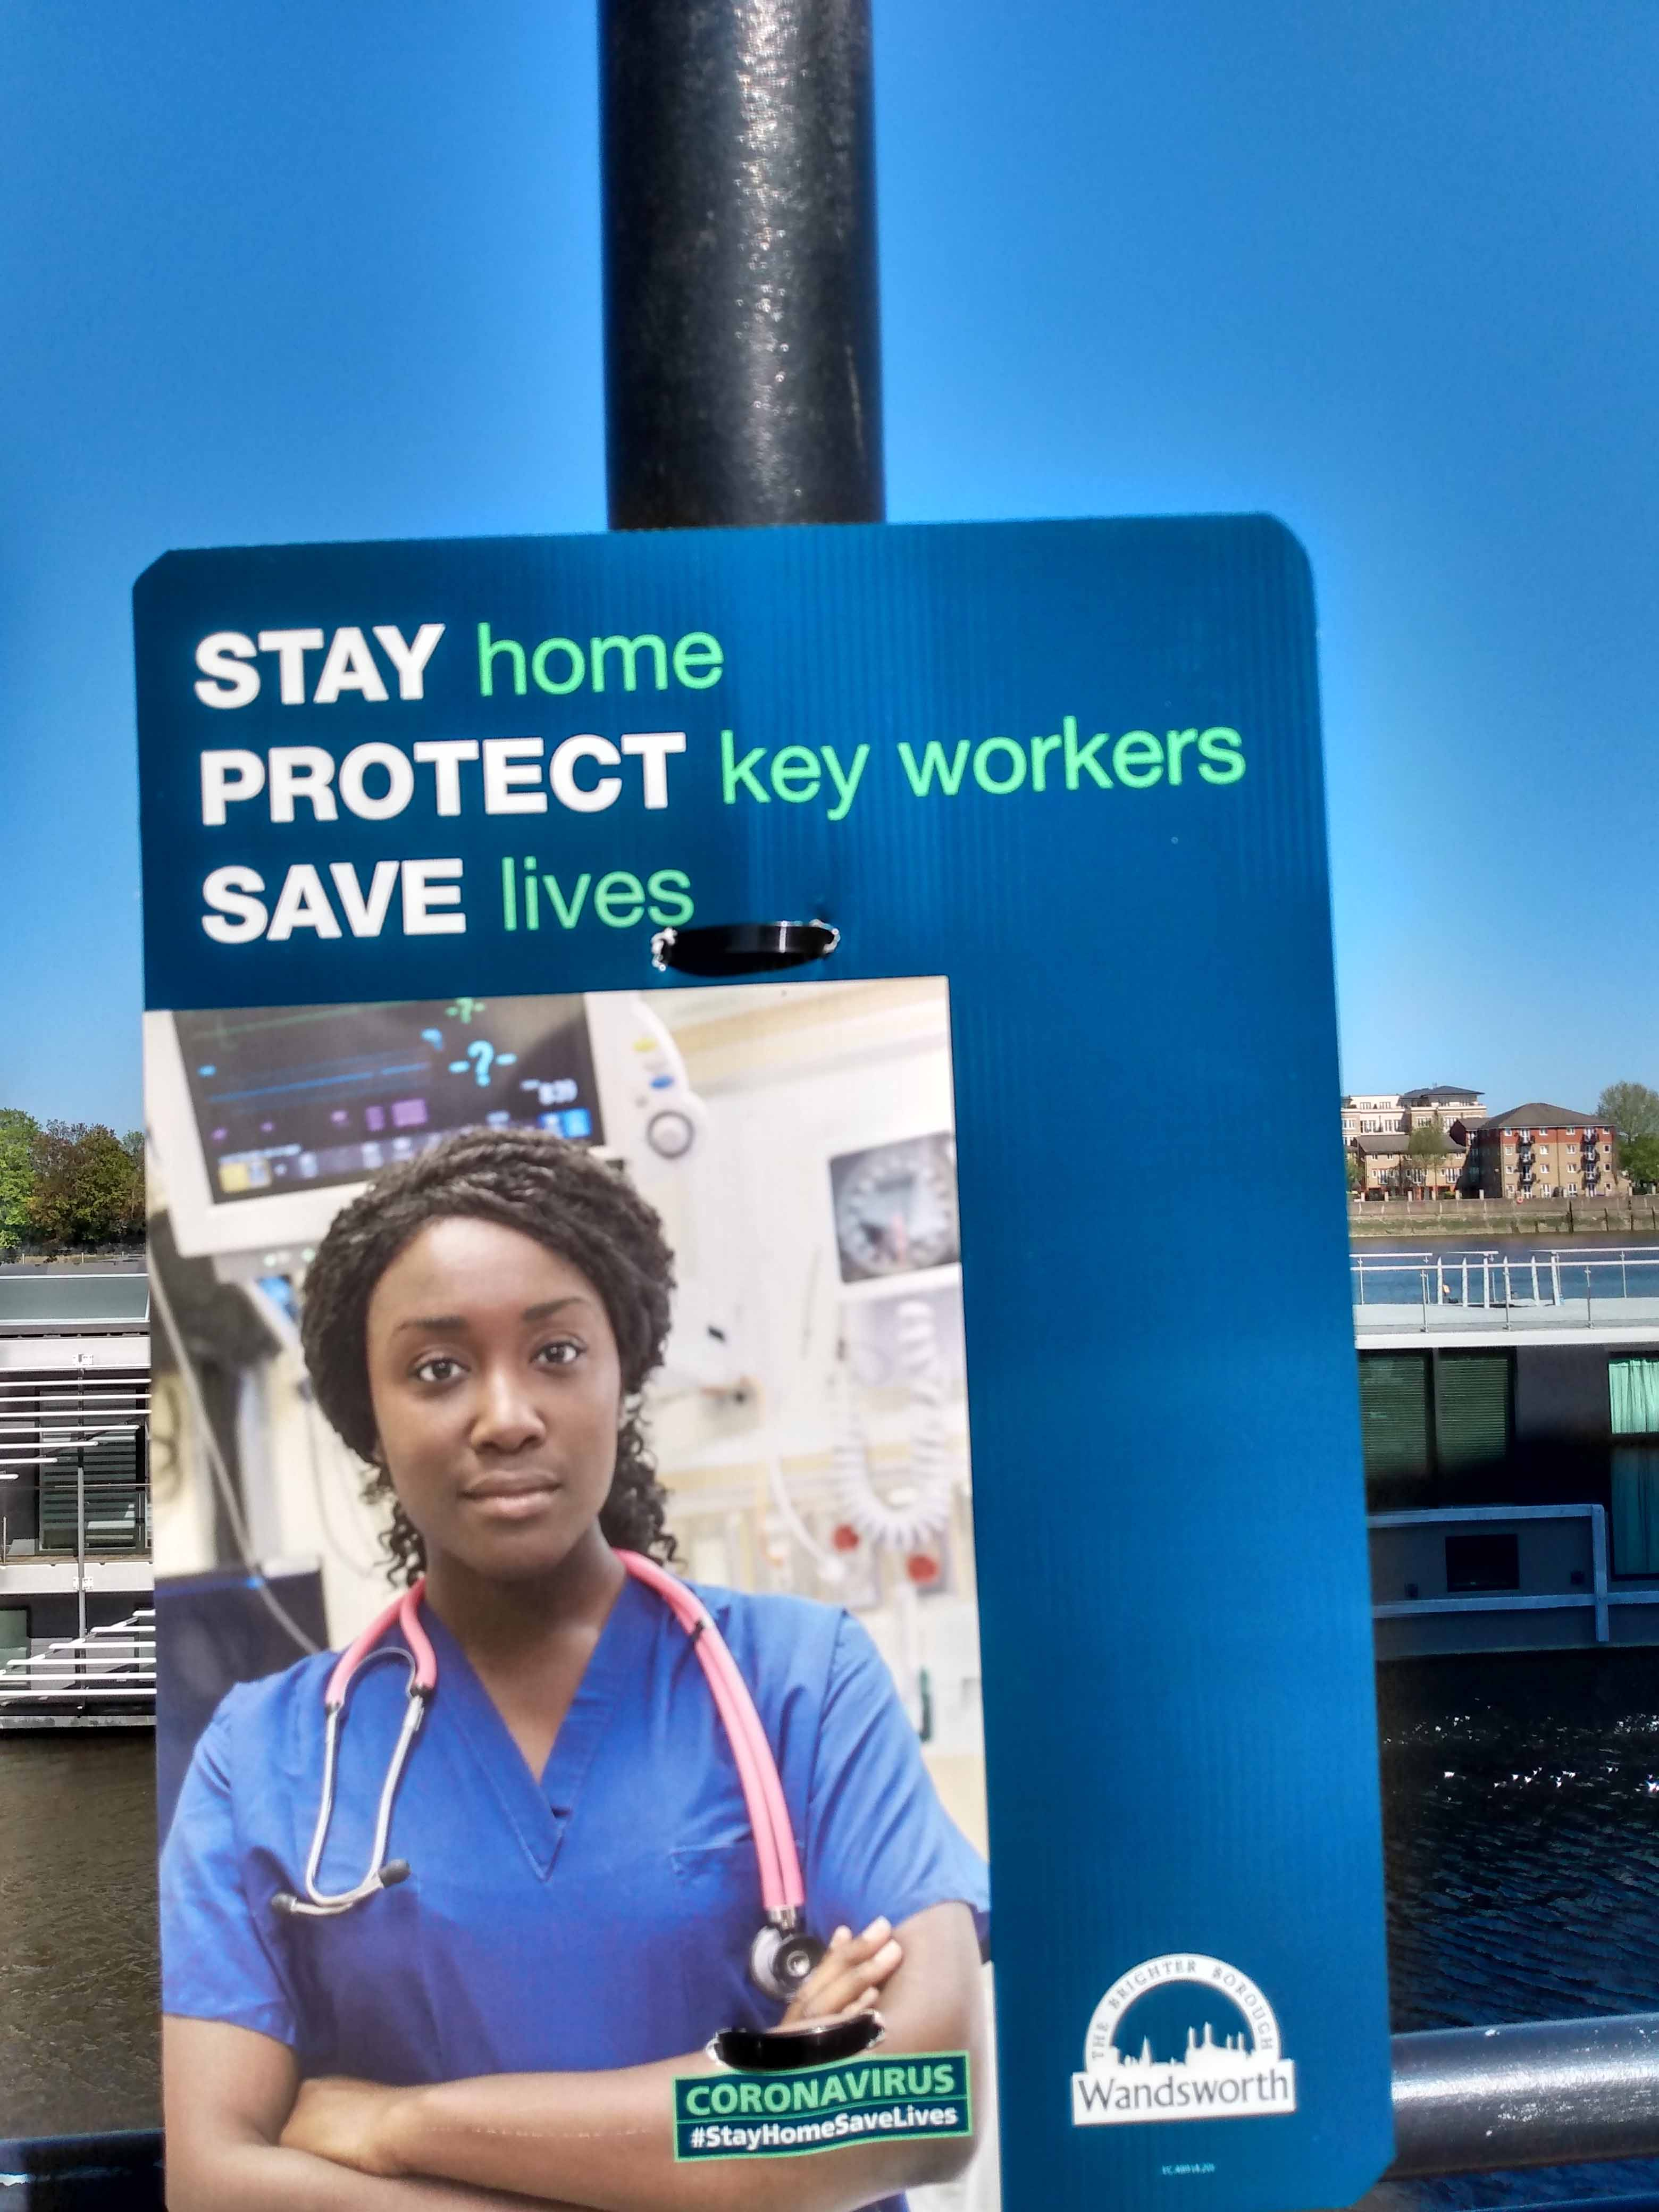 Stay home stay safe - support the NHS